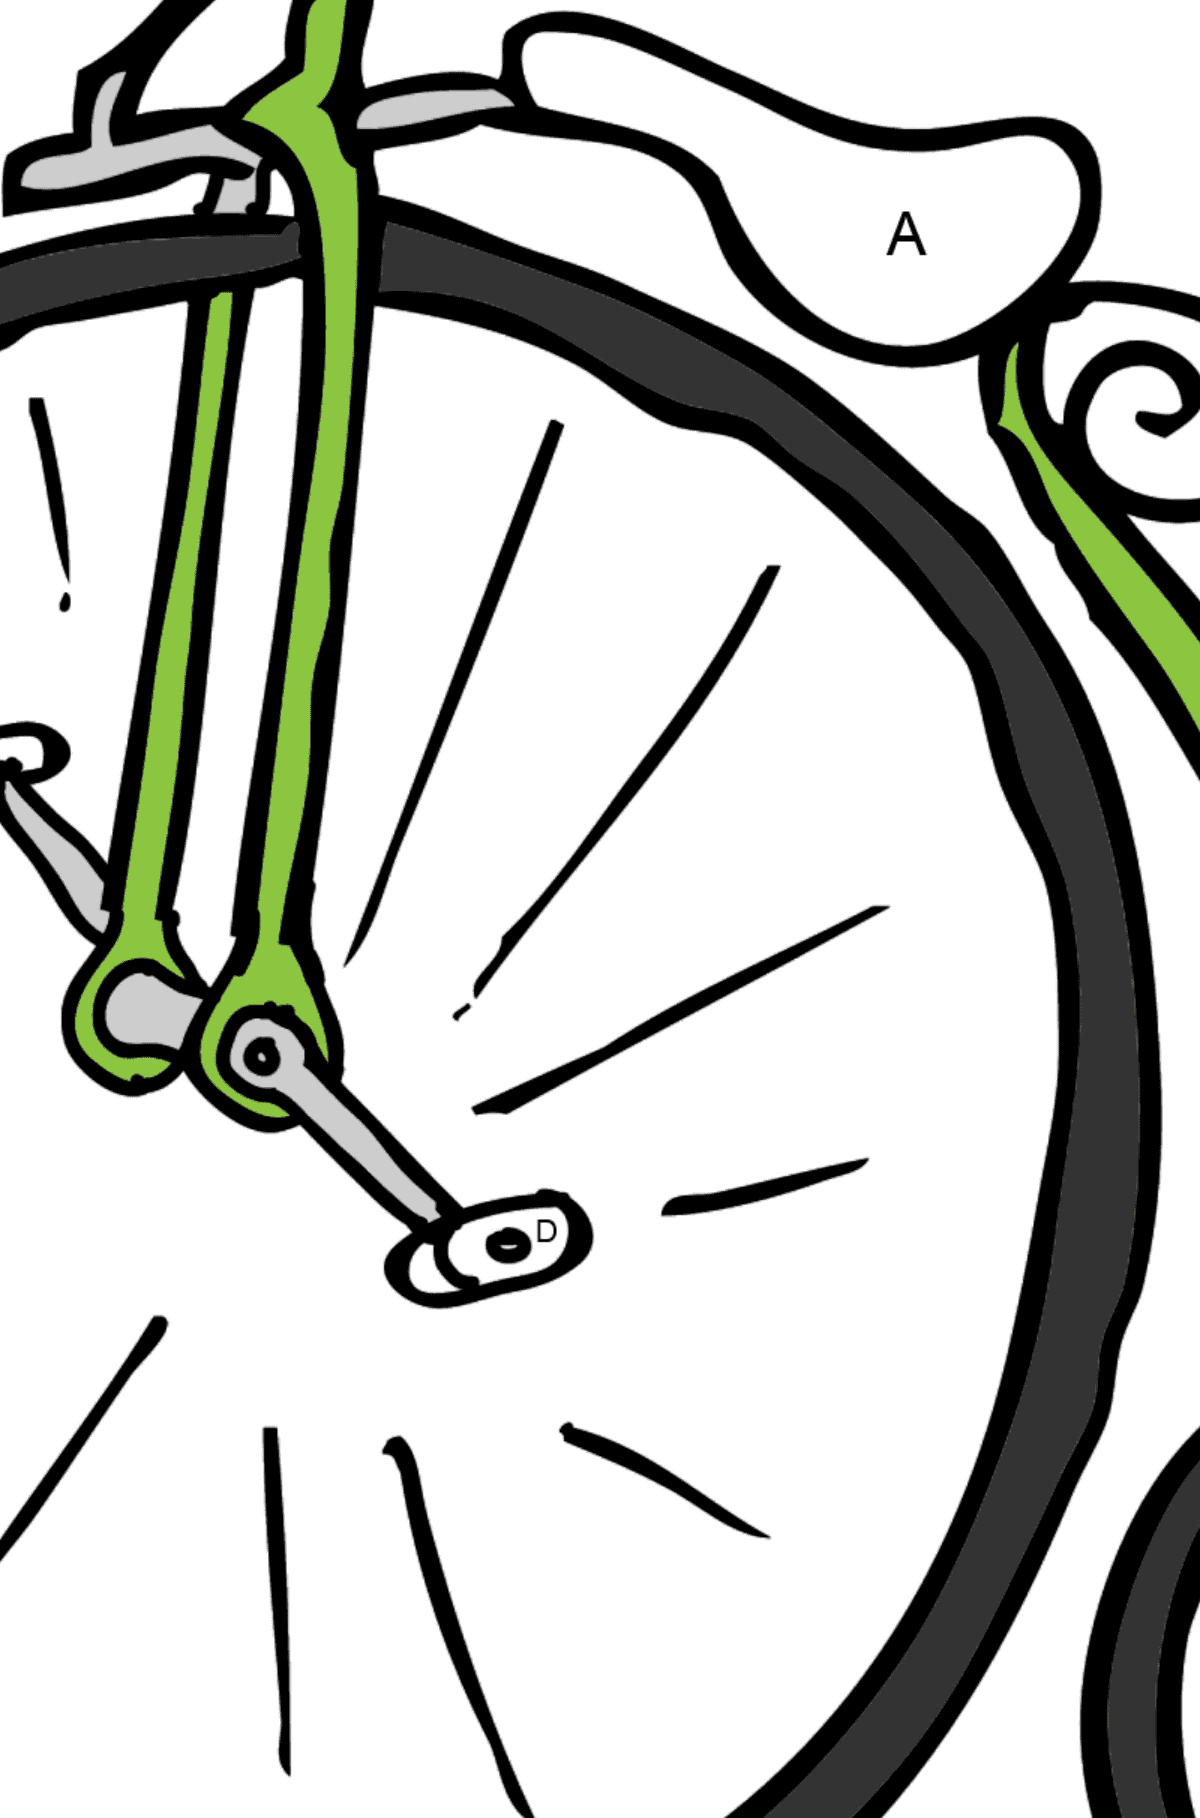 Coloring Page - A High-Wheel Cycle – Unicycle - Coloring by Letters for Kids